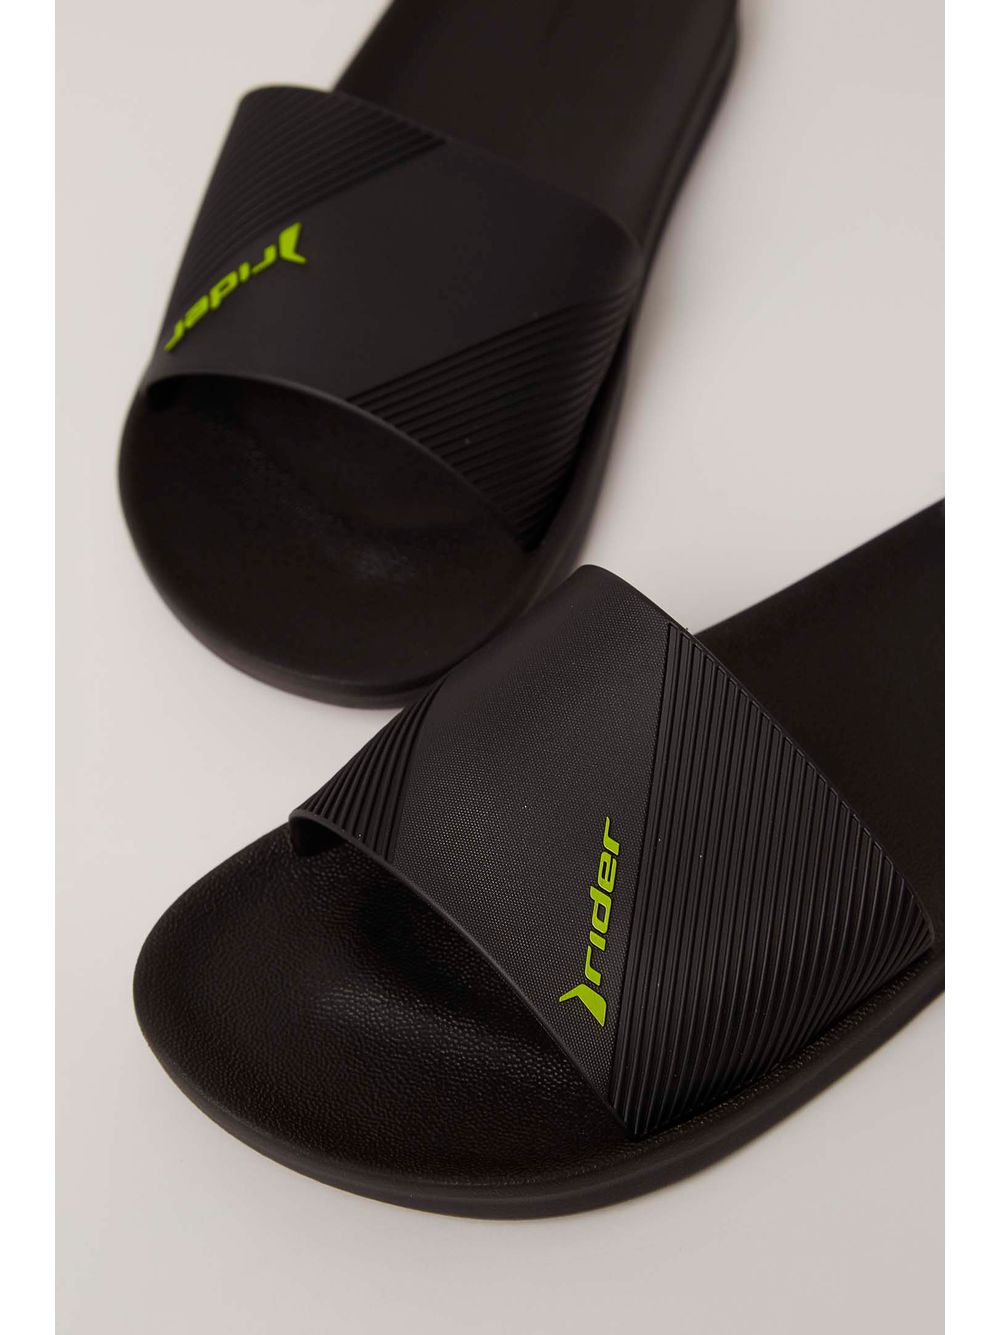 d37a27d887 Chinelo Slide Rider Preto - pittol